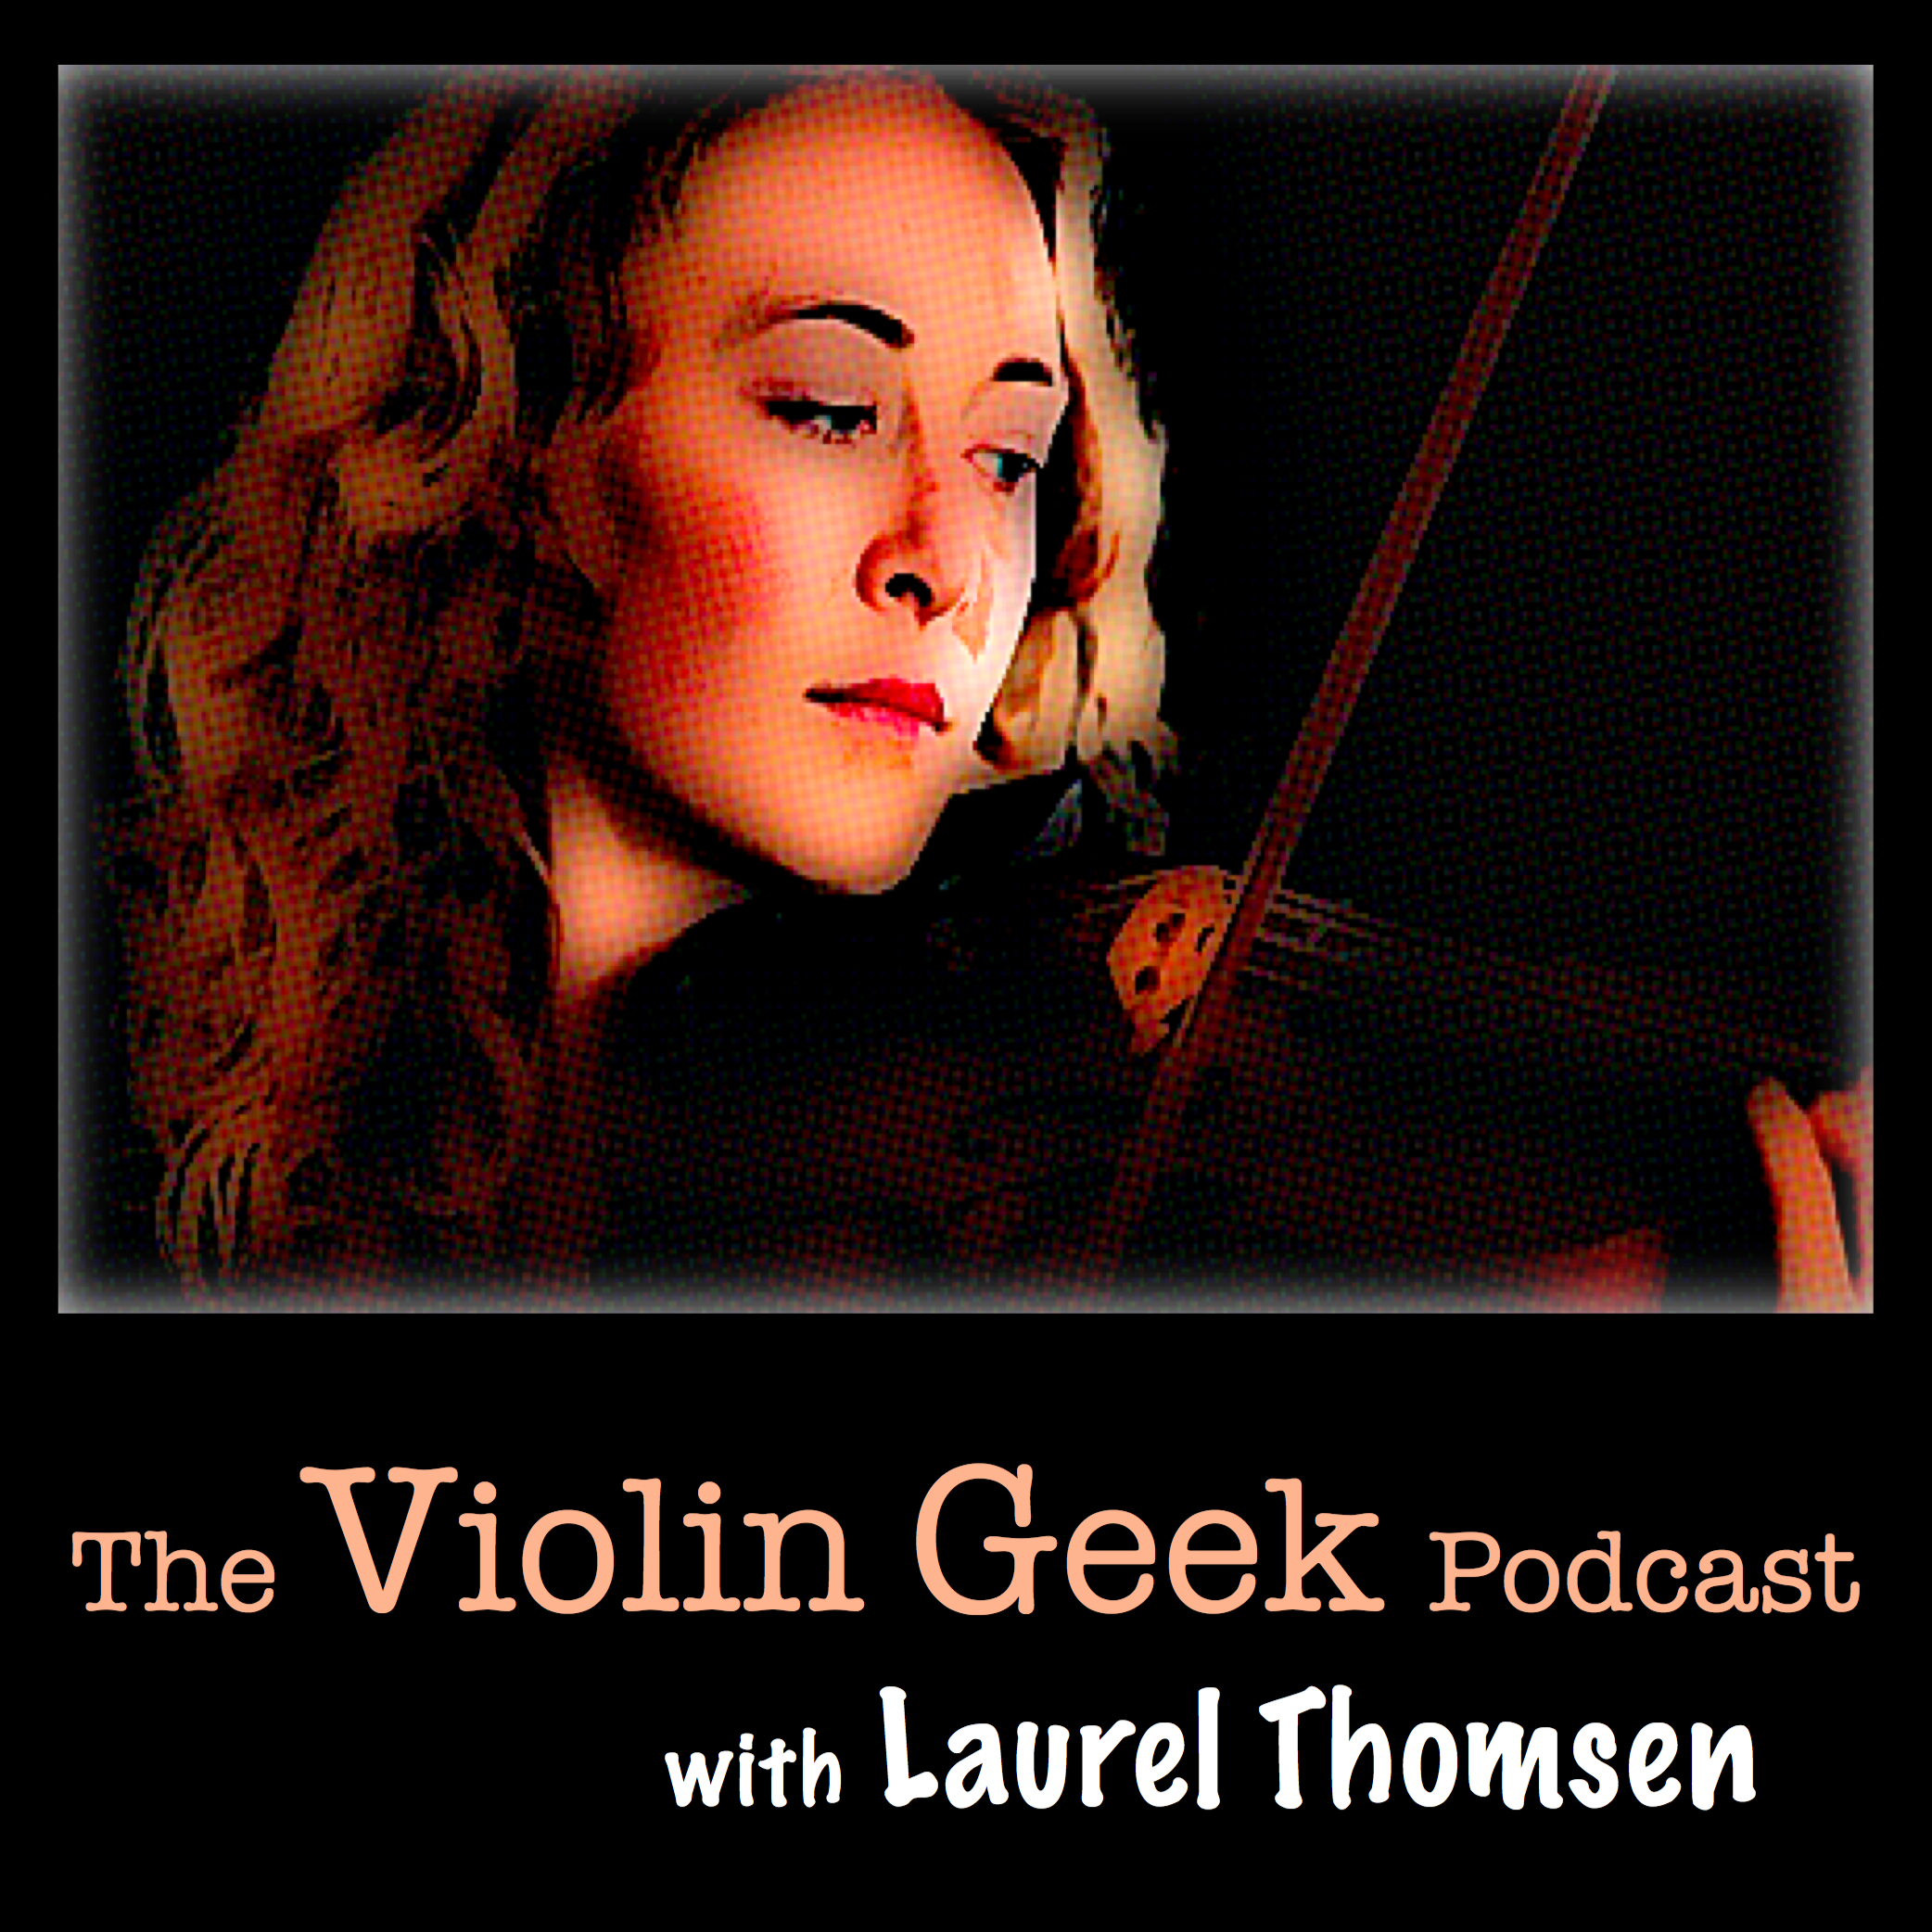 The Violin Geek Podcast